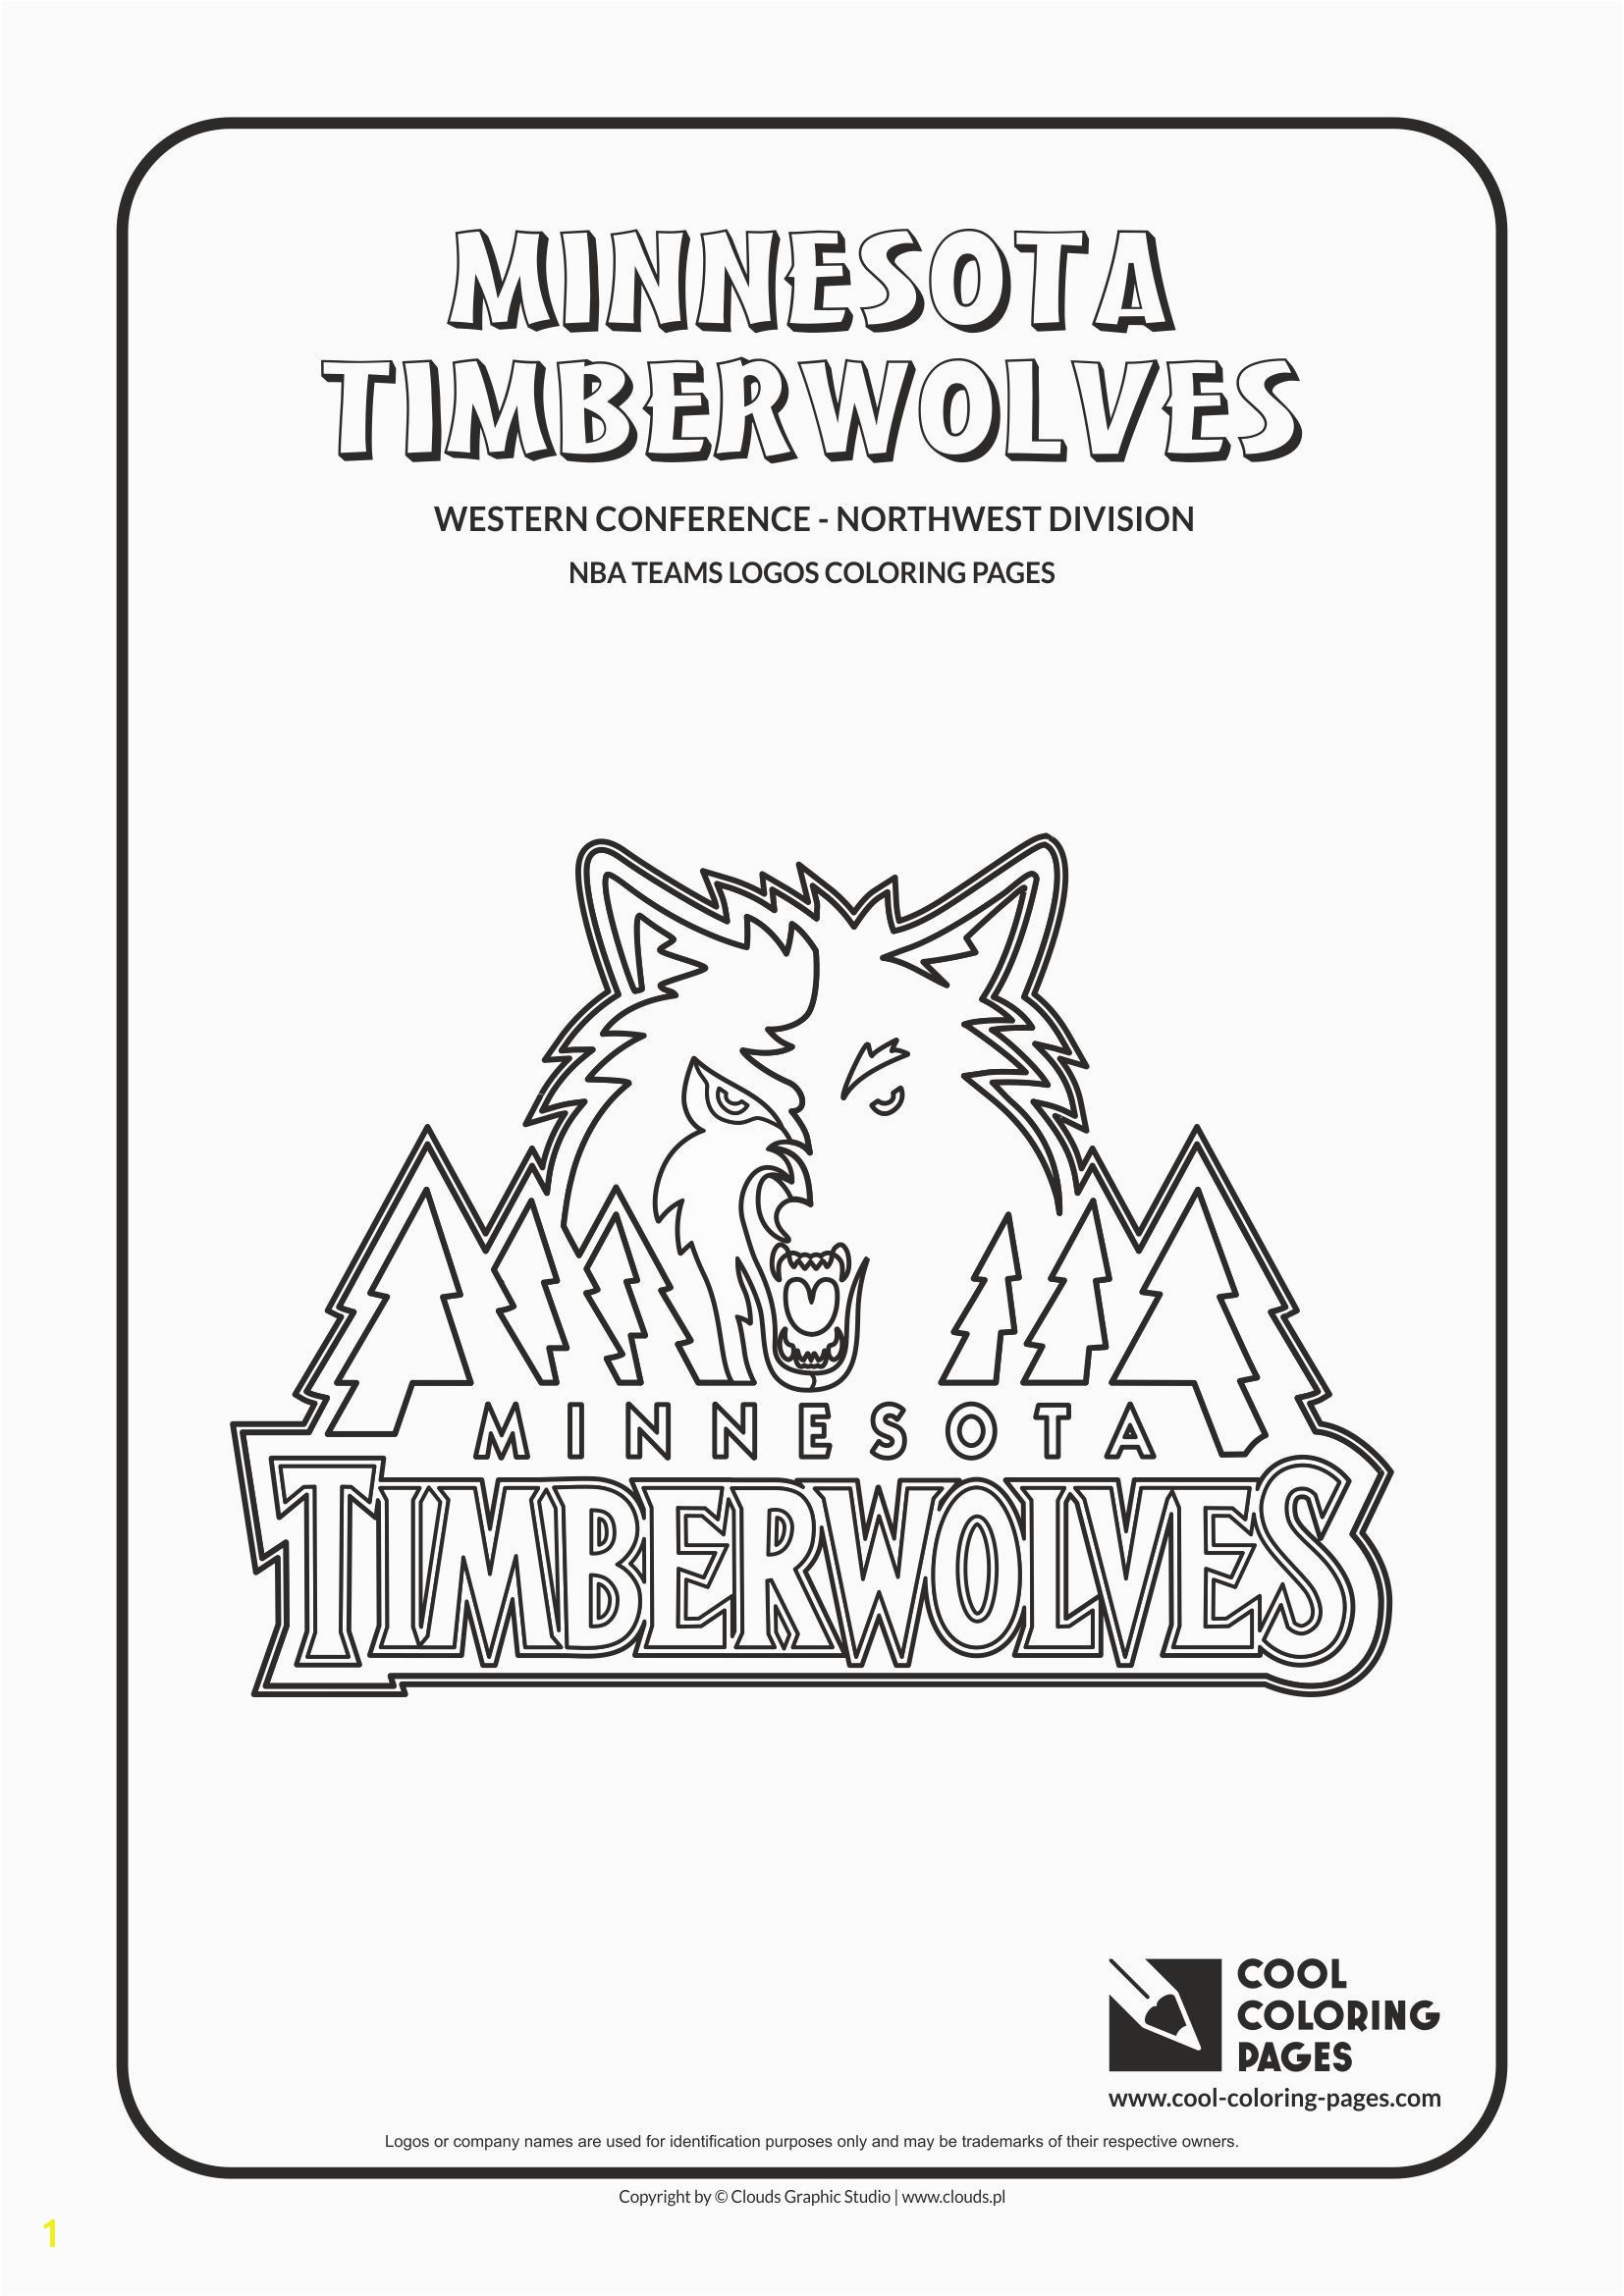 Cool Coloring Page Fresh Bonanza Timberwolves Coloring Pages Cool Minne 8622 Unknown